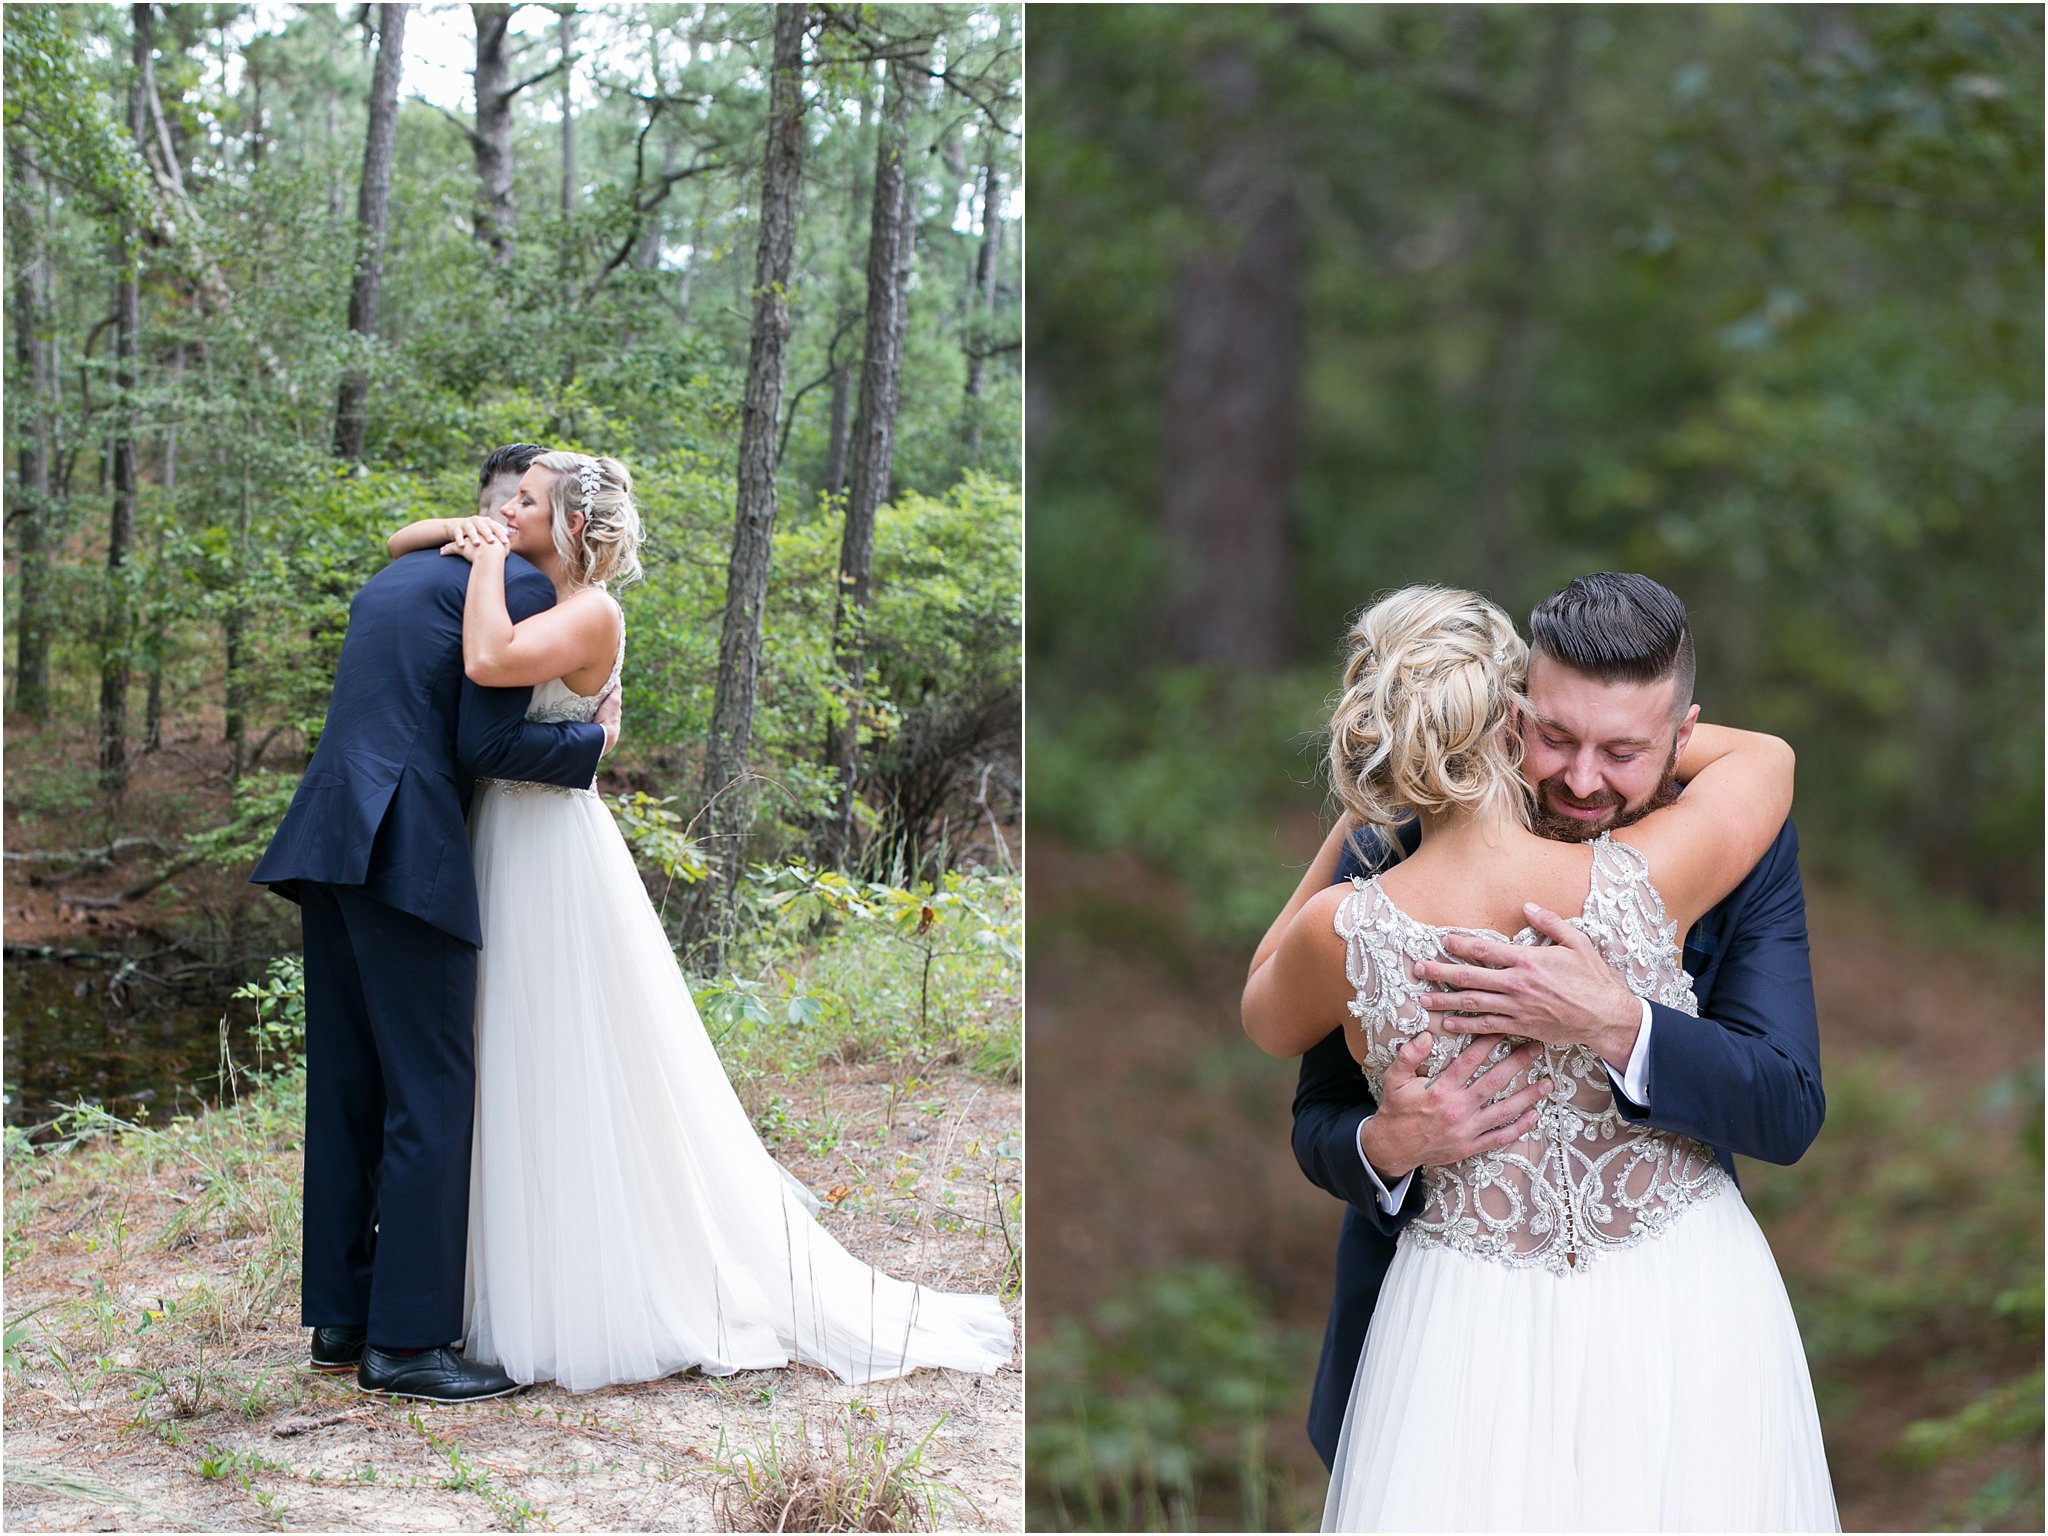 jessica_ryan_photography_virginia_wedding_photographer_candid_authentic_hampton_roads_wedding_photography_marina_shores_yacht_club_first_landing_state_park_woodland_theme_garden_3280